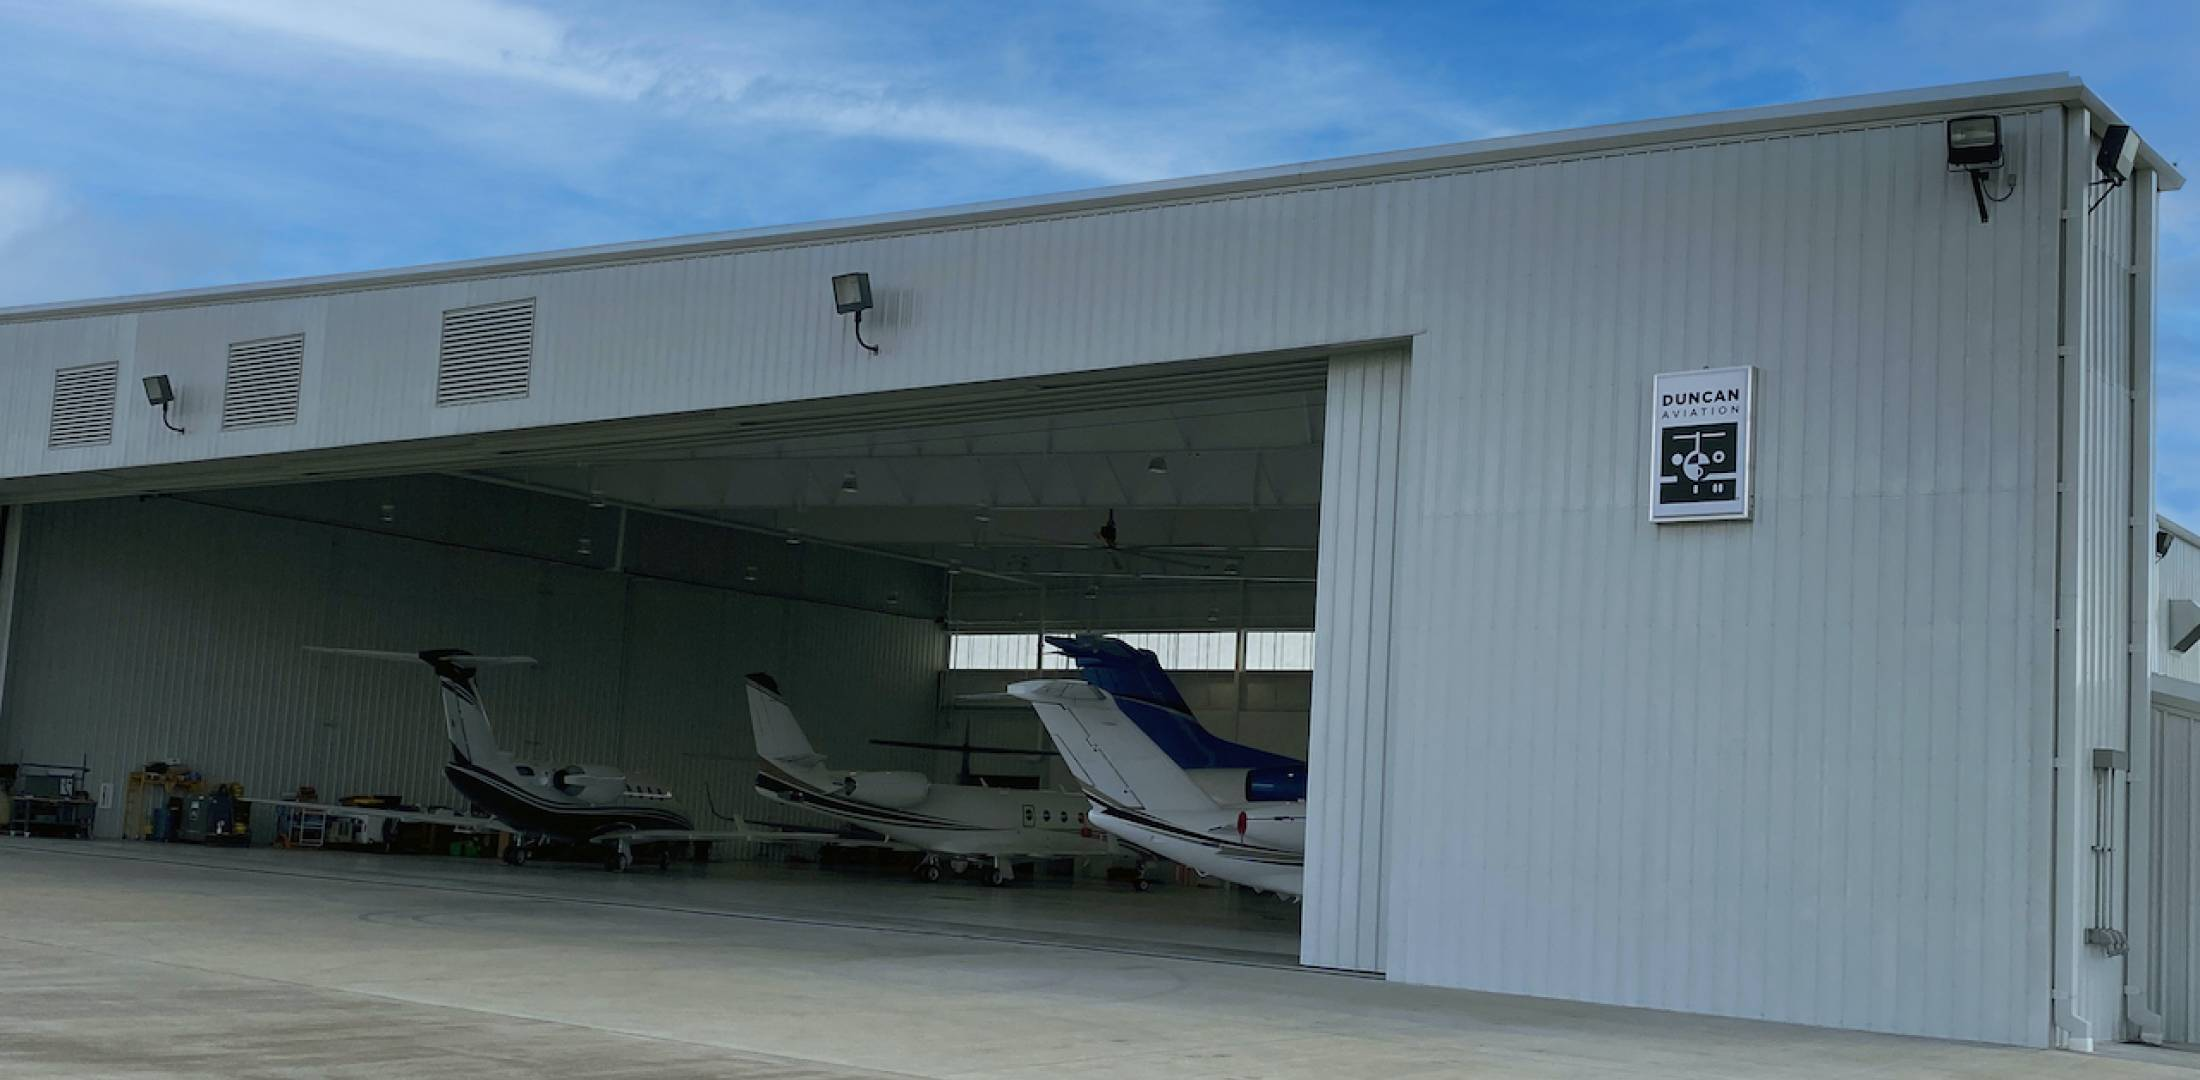 Hangar at HOU that now houses Duncan's satellite repair station